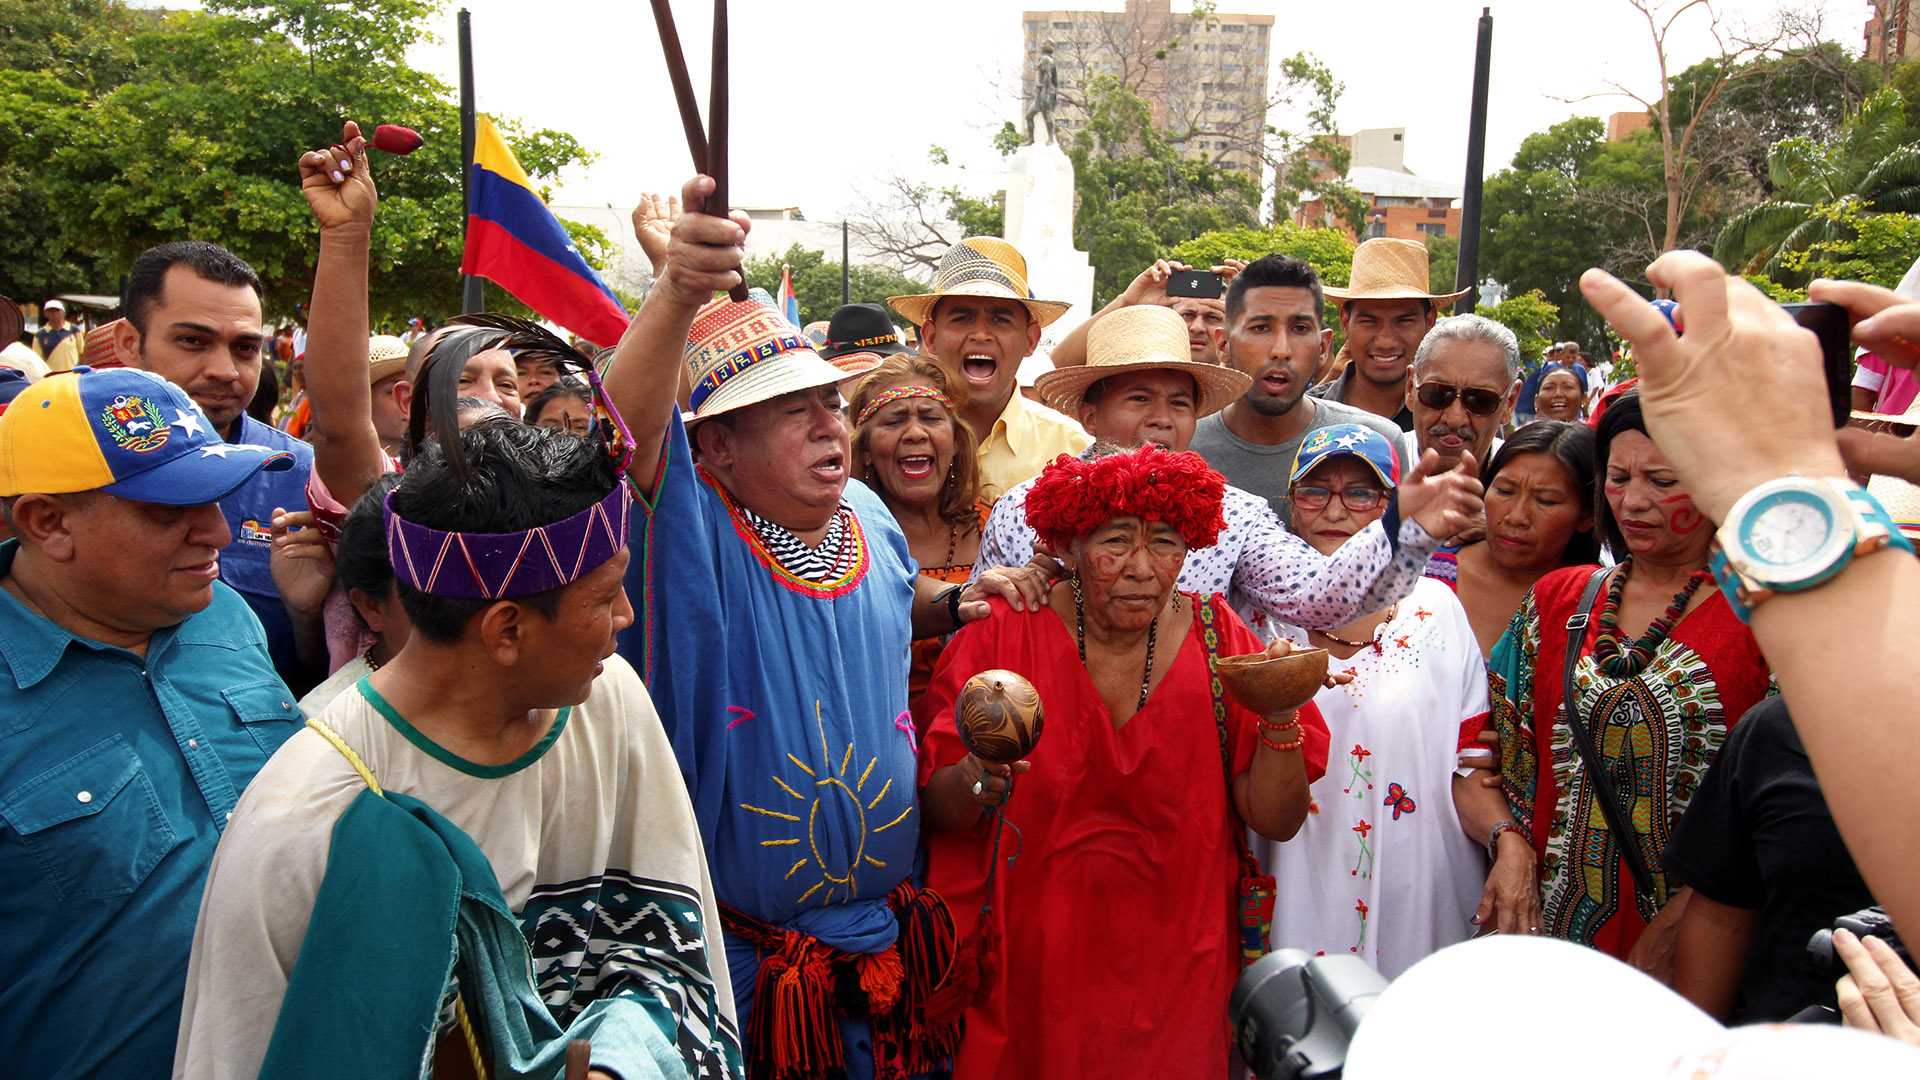 Indigenous Rights in Venezuela: Unfulfilled Promises, Trampled Dignity